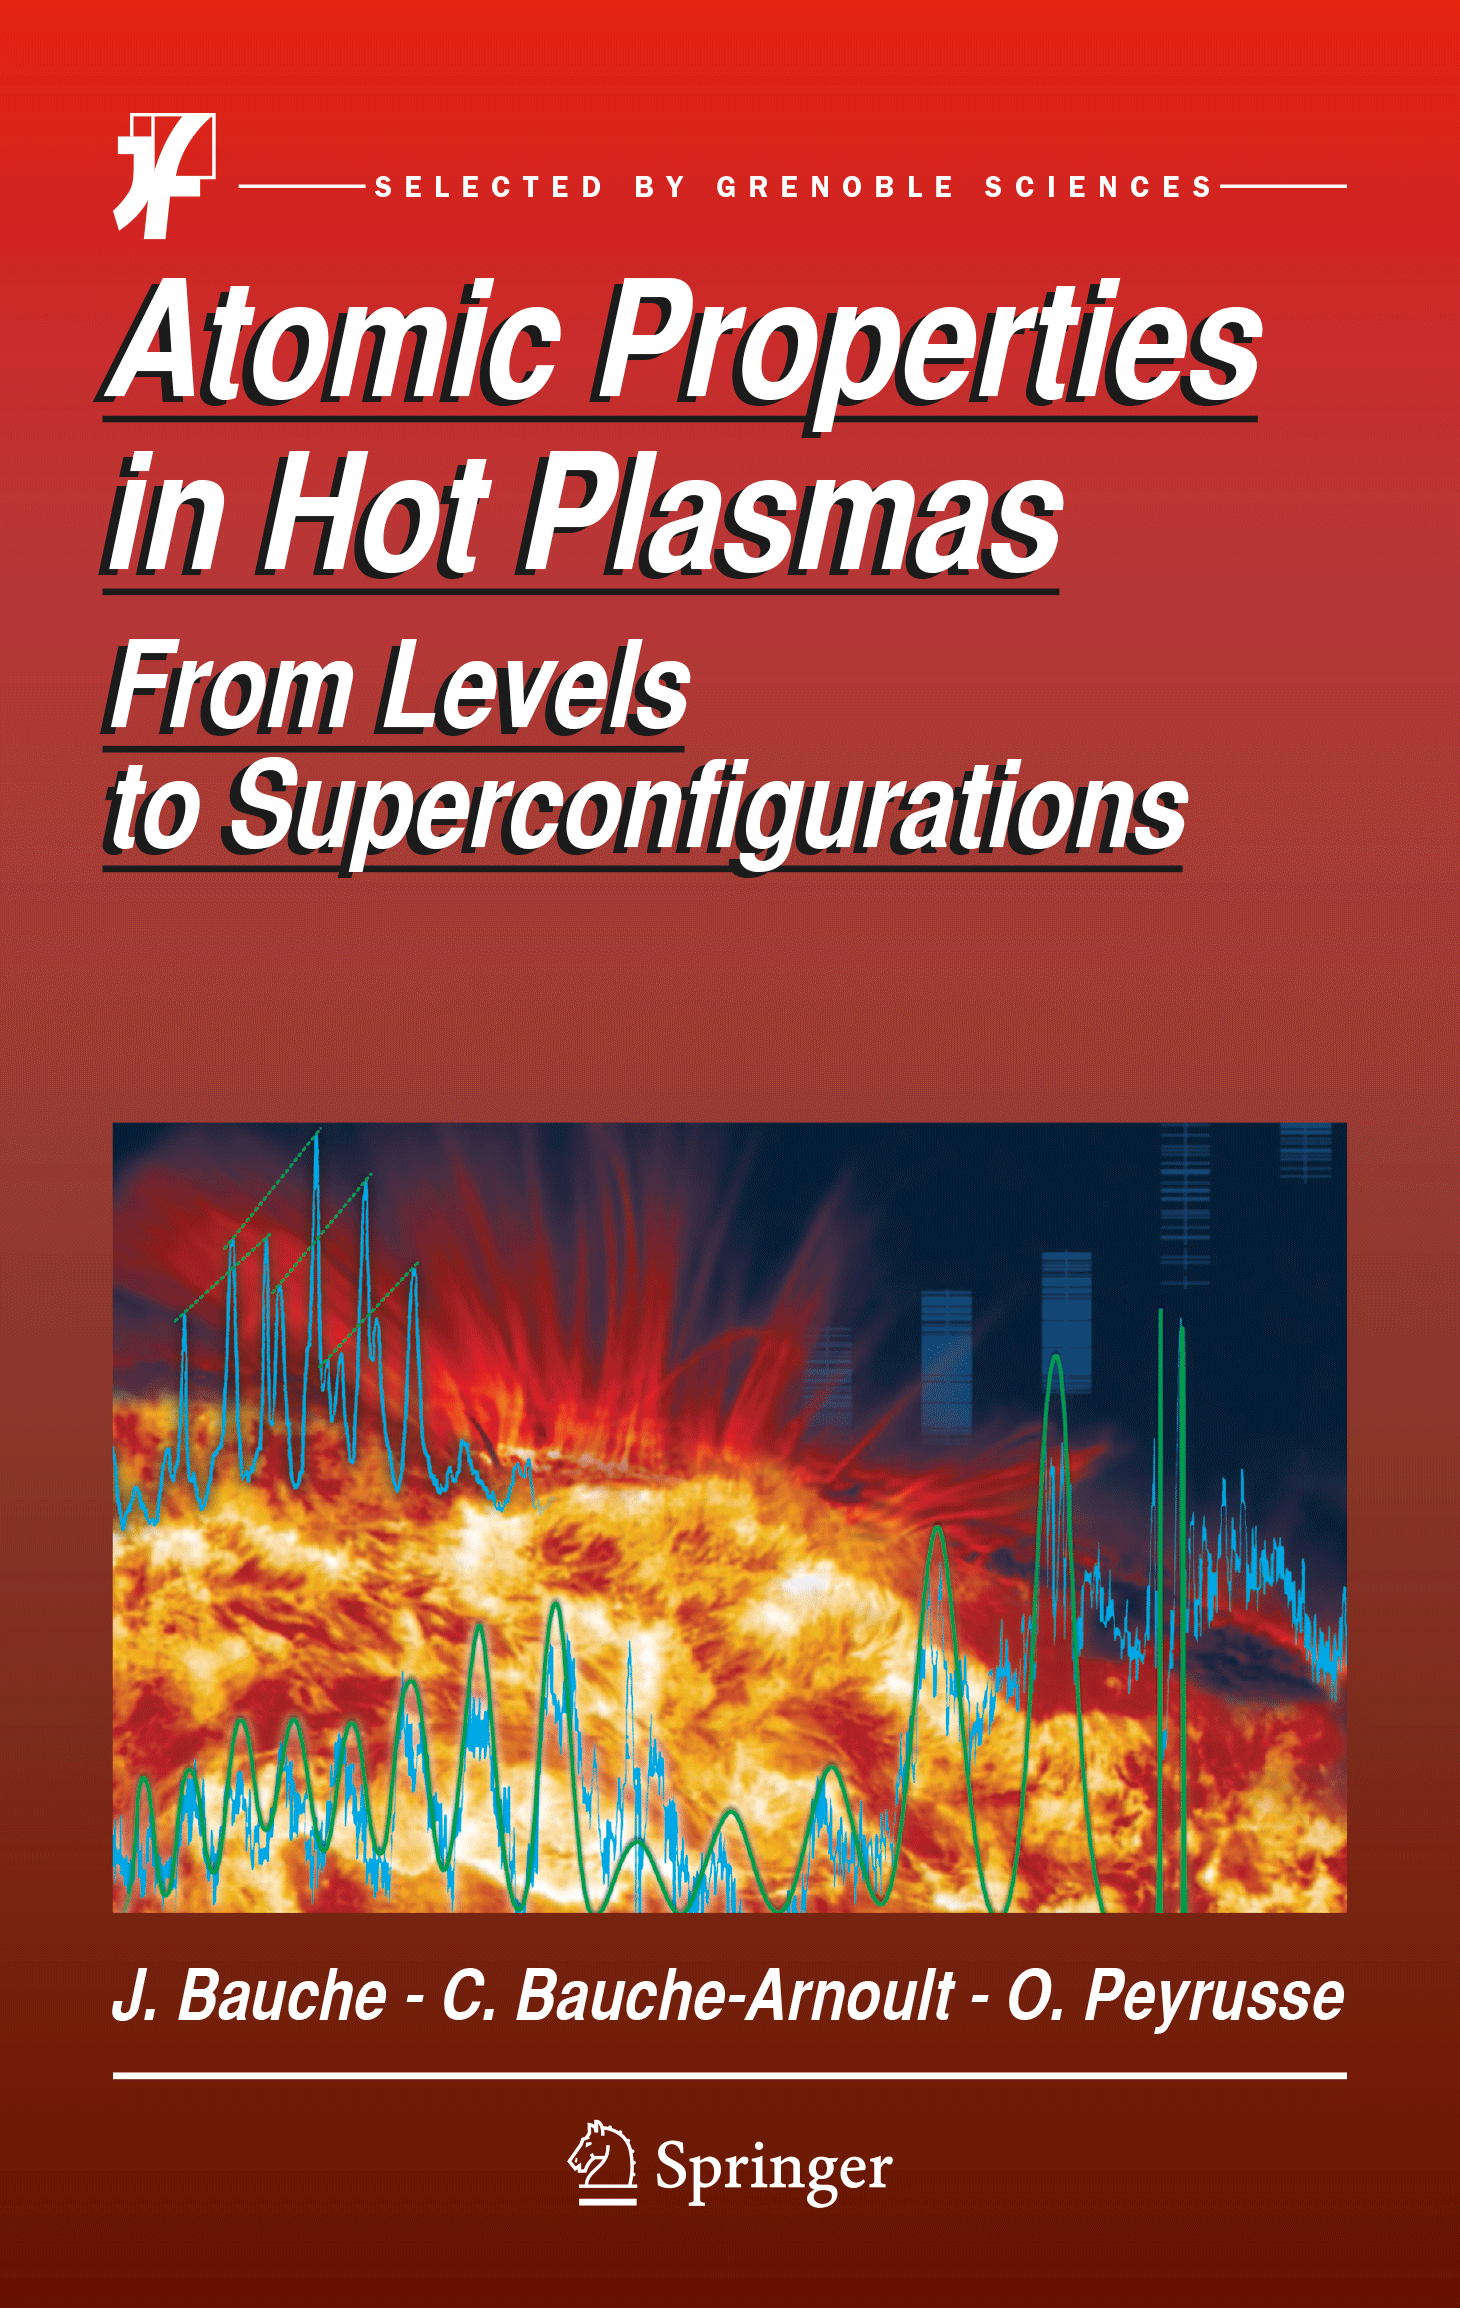 Atomic properties in Hot Plasmas